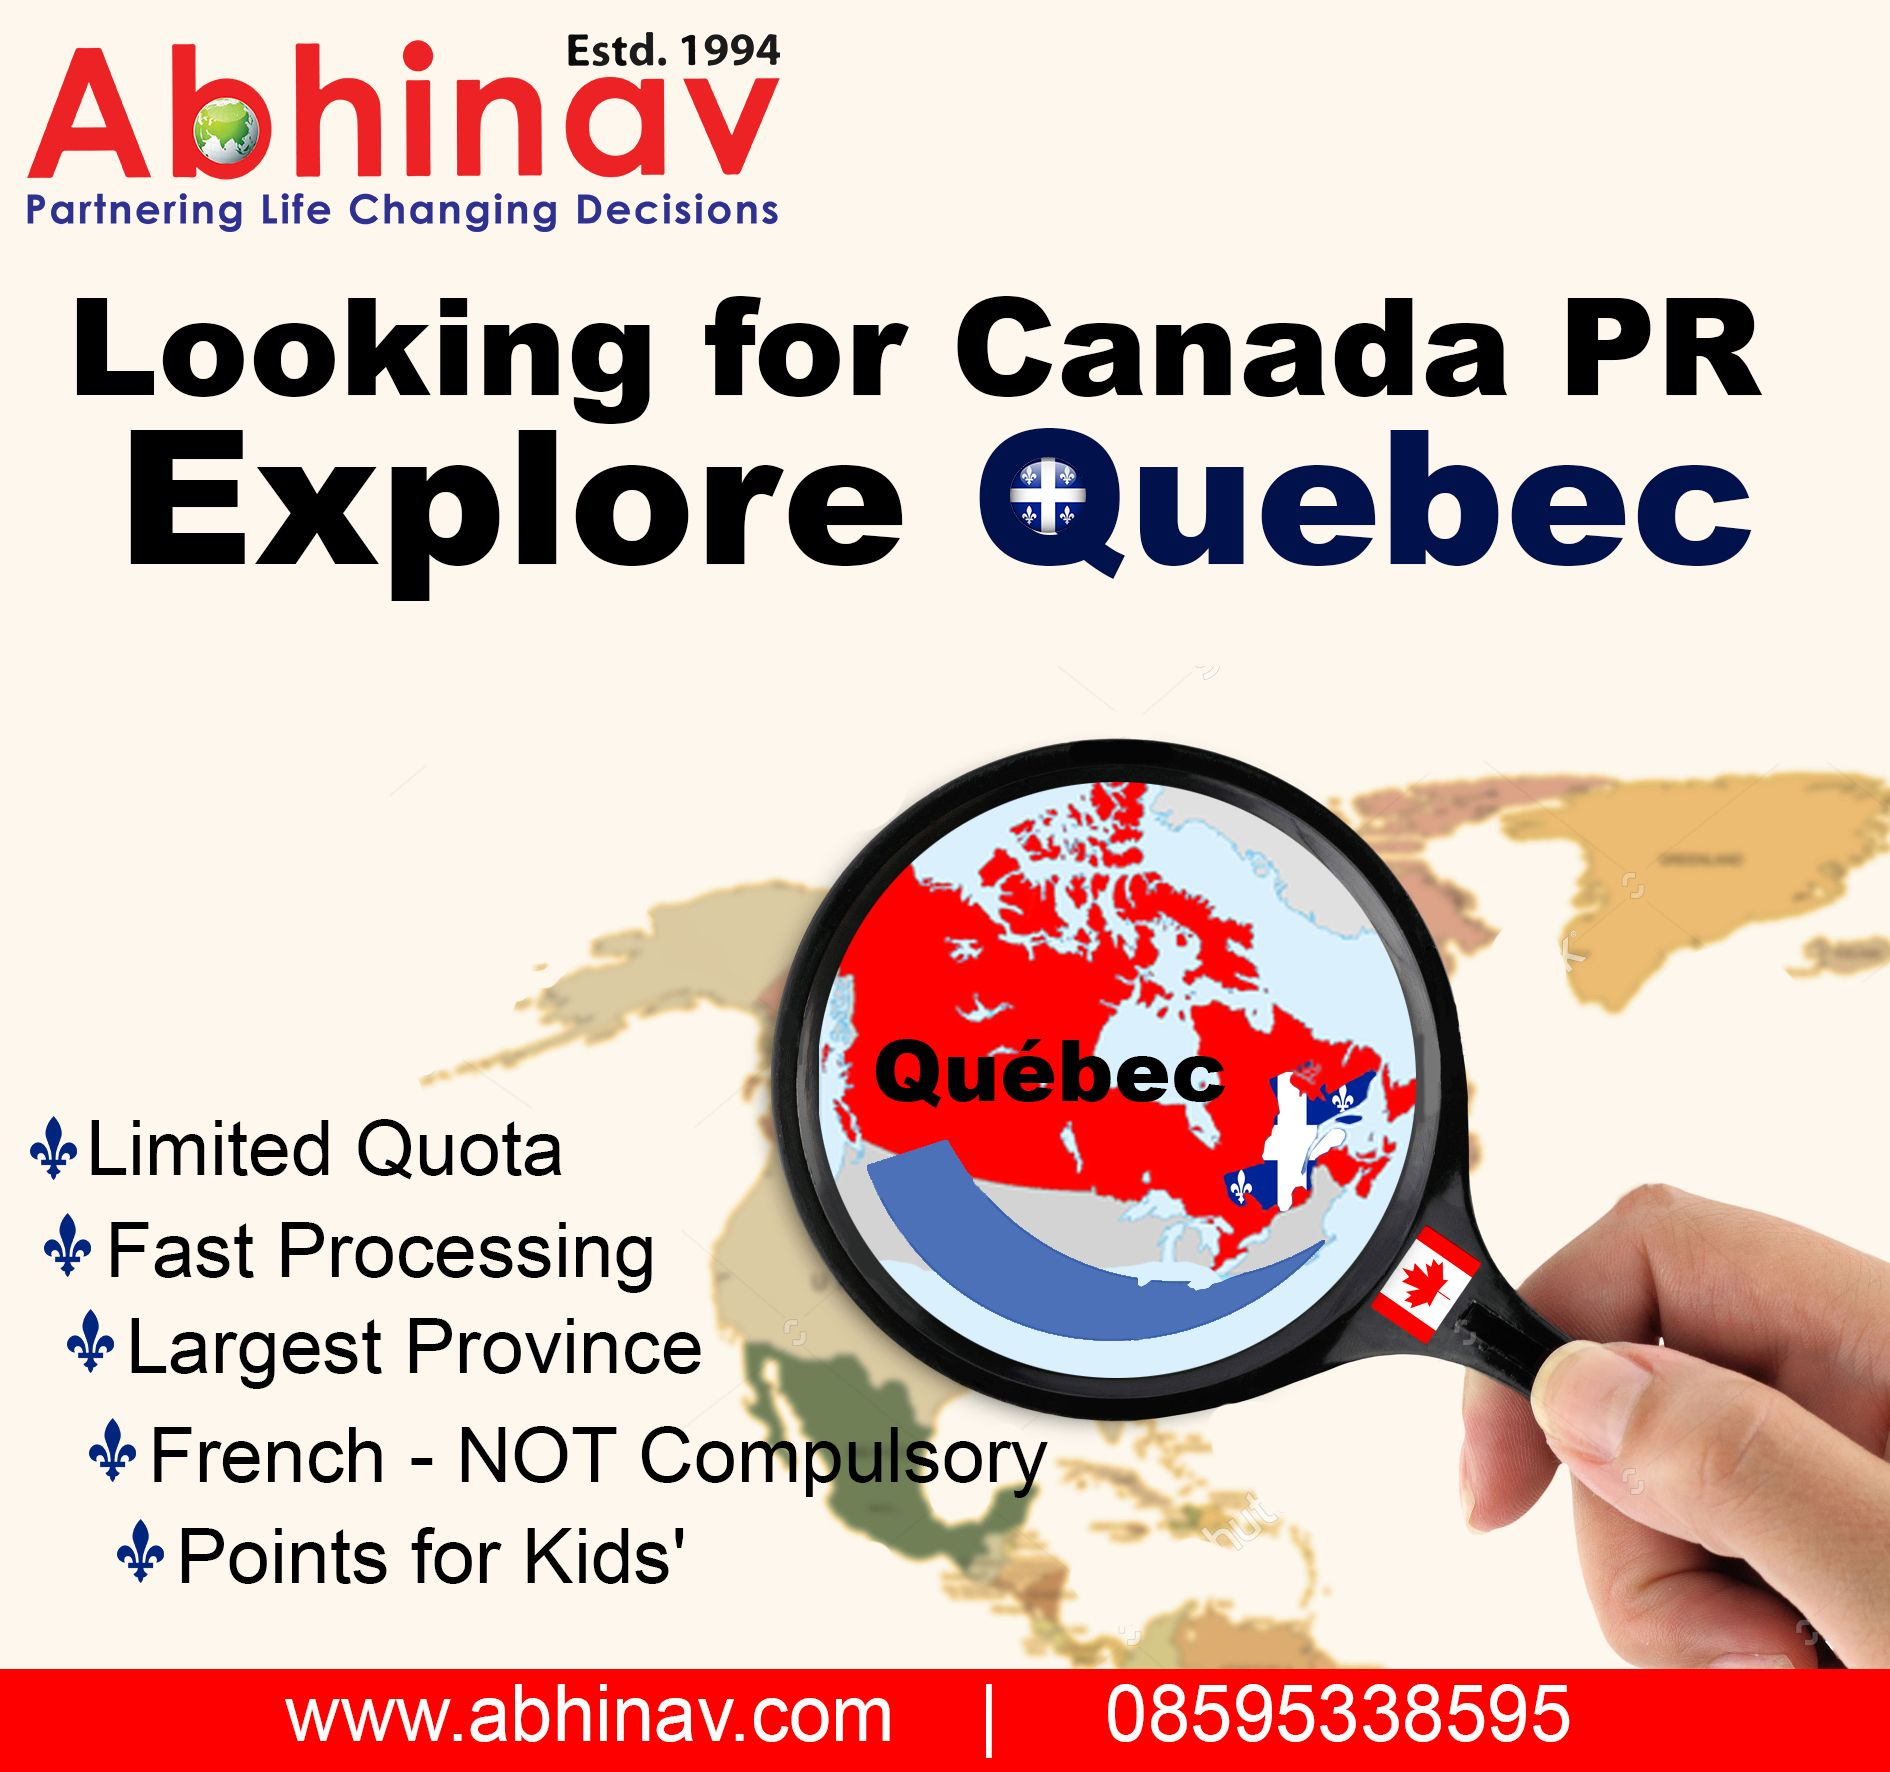 Looking for Canada PR, Explore Quebec. Free assessments